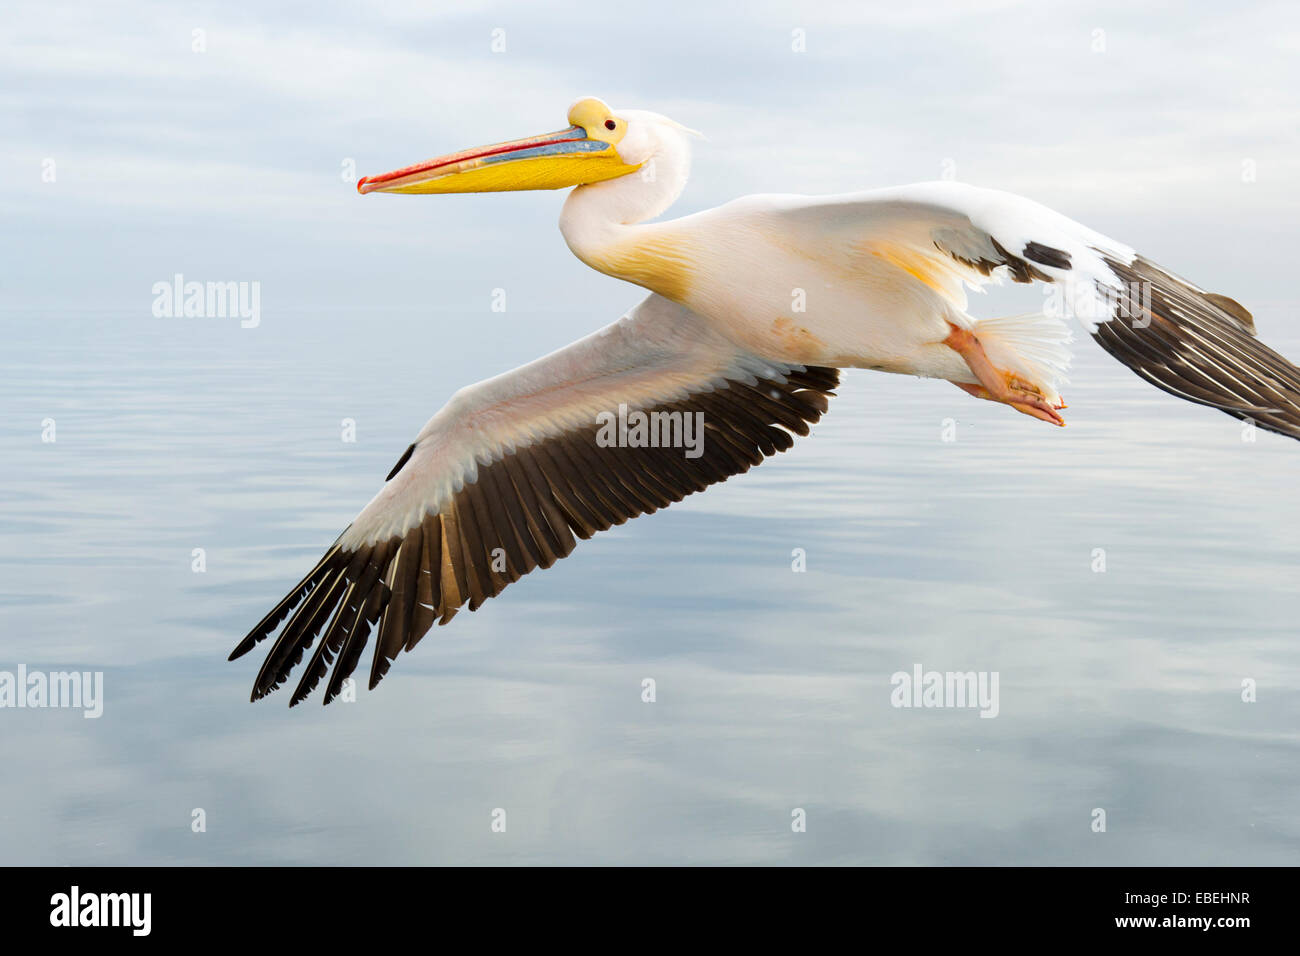 Great White Pelican (Pelecanus onocrotalus) in flight against cloudy sky, close up, Walvisbaai, Namibia. - Stock Image